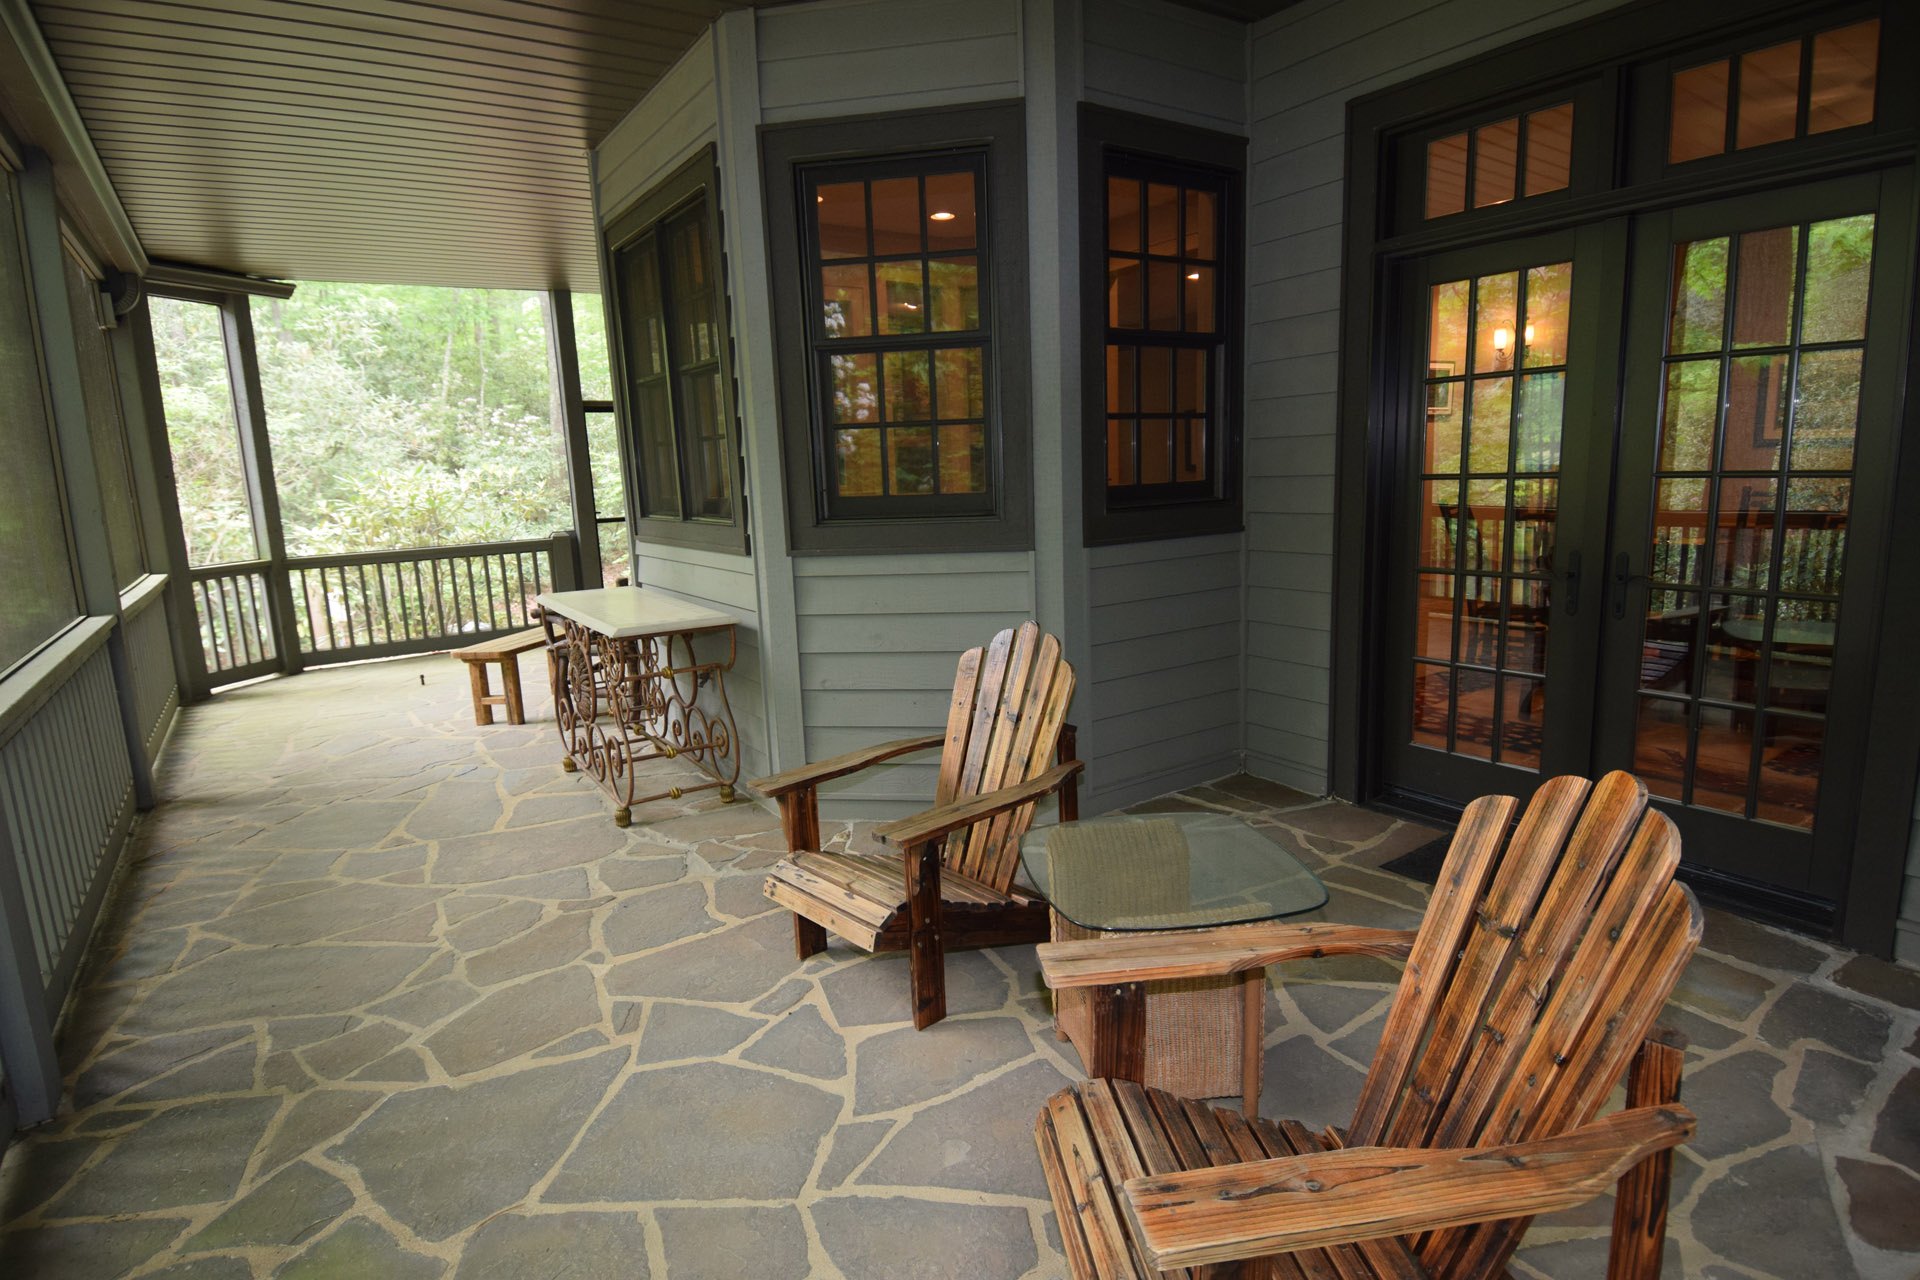 ShilohCreekModelHome_2017Revisions_ScreenedPorch2.jpg